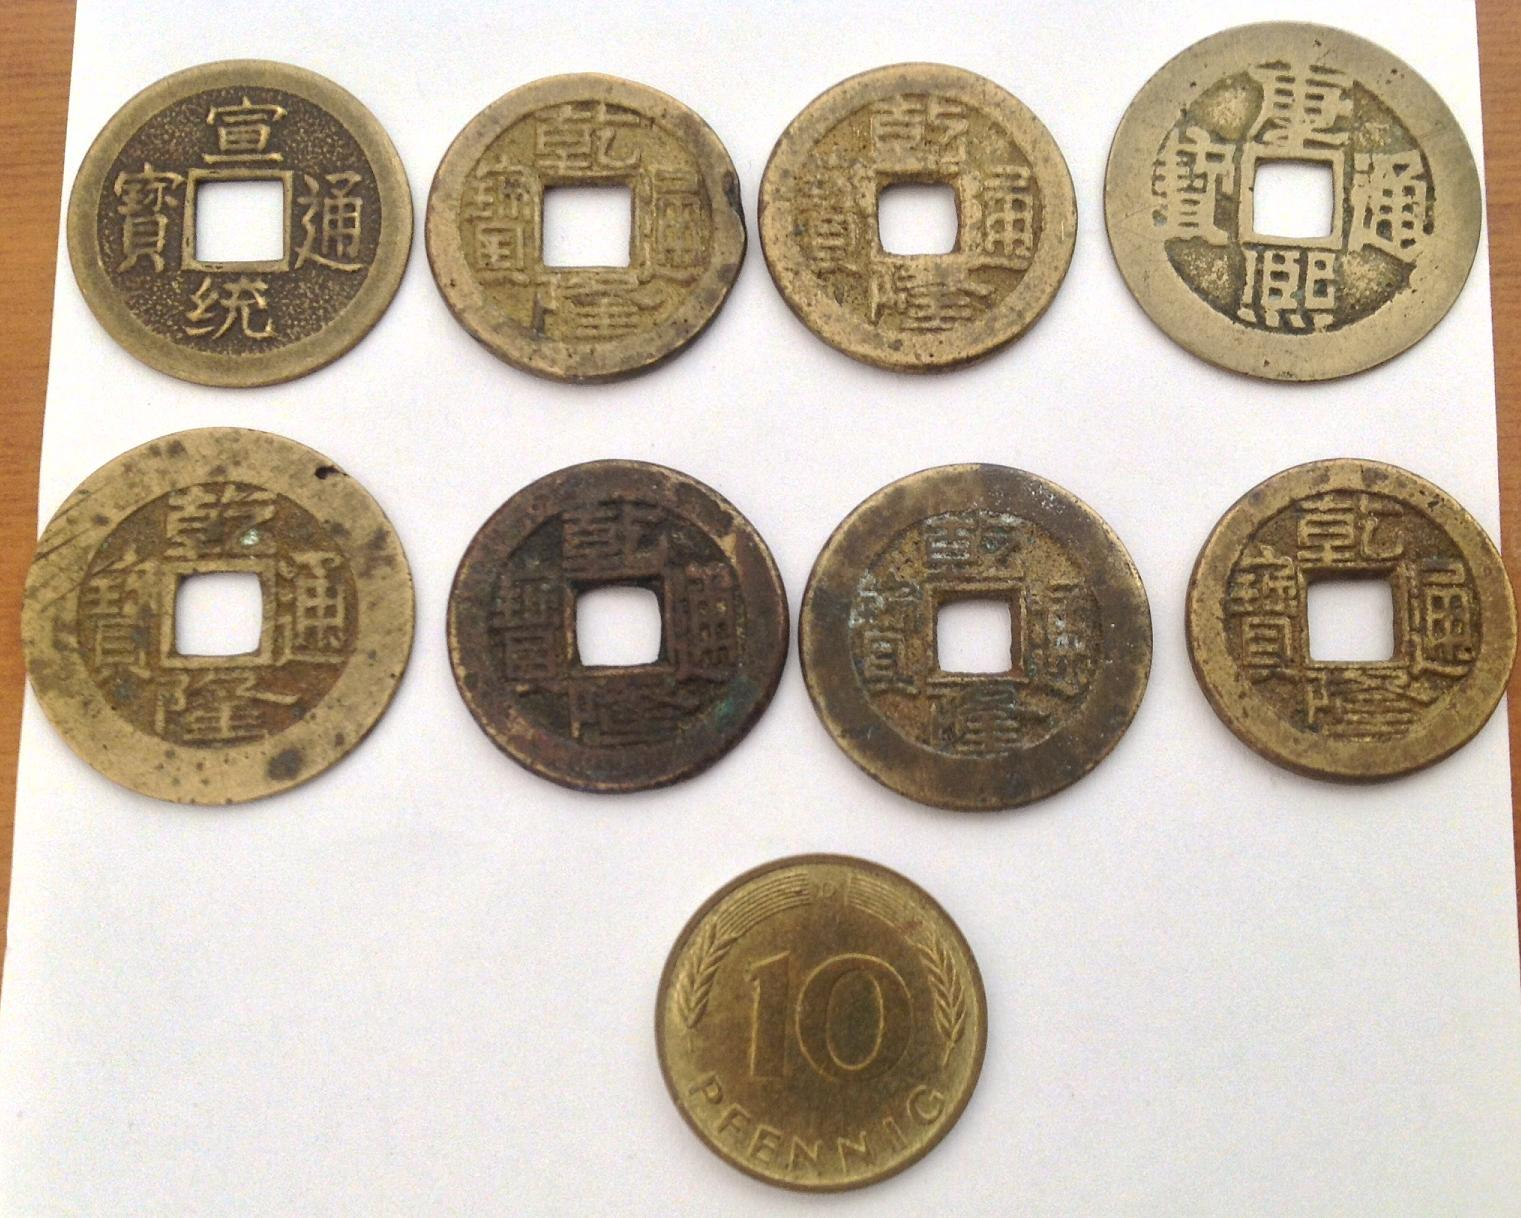 China cash coin value key : Securecoin forum 90